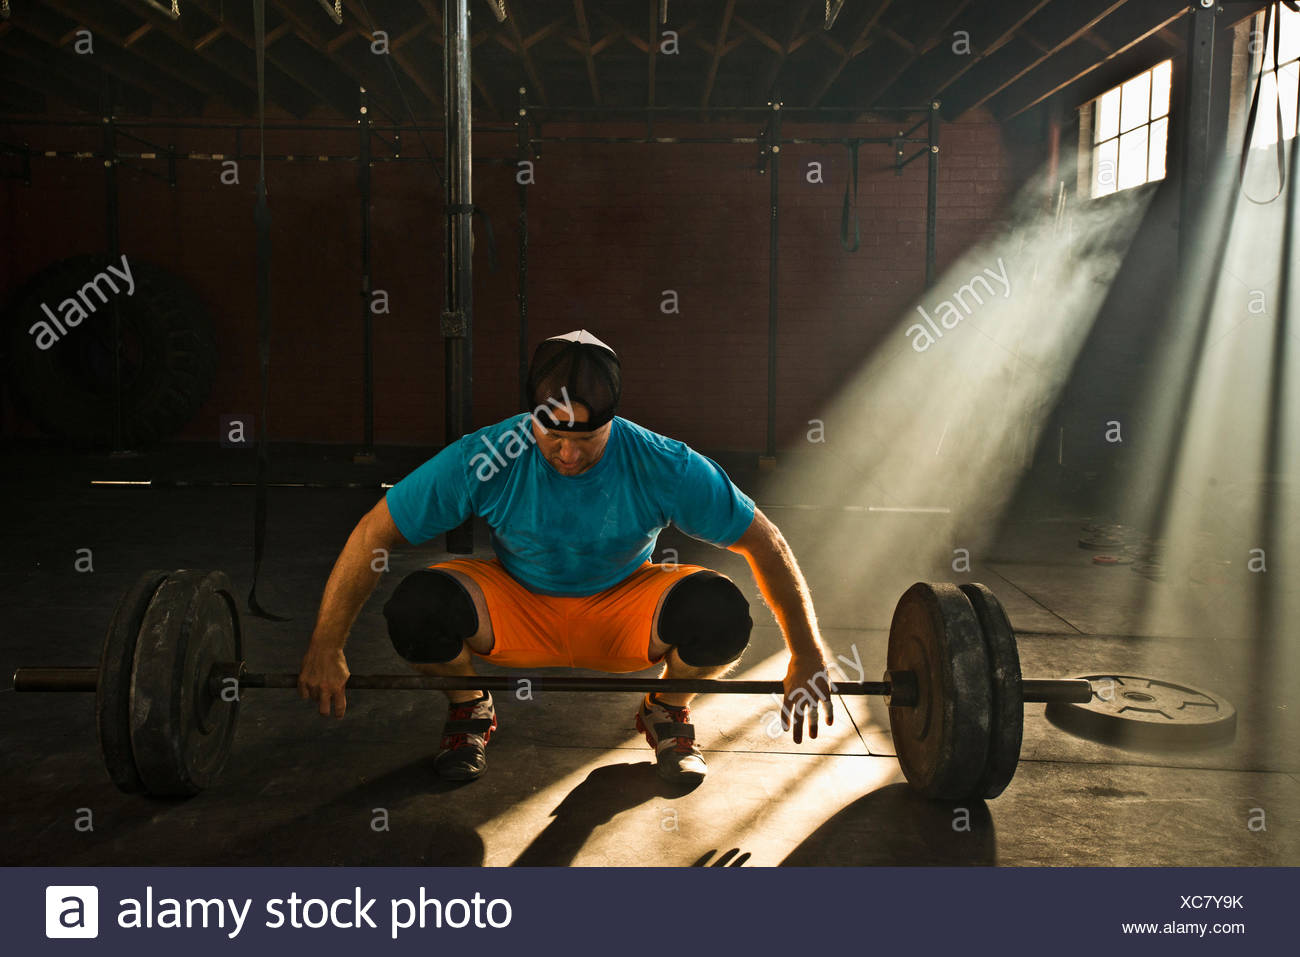 A male athlete prepares to deadlift. - Stock Image